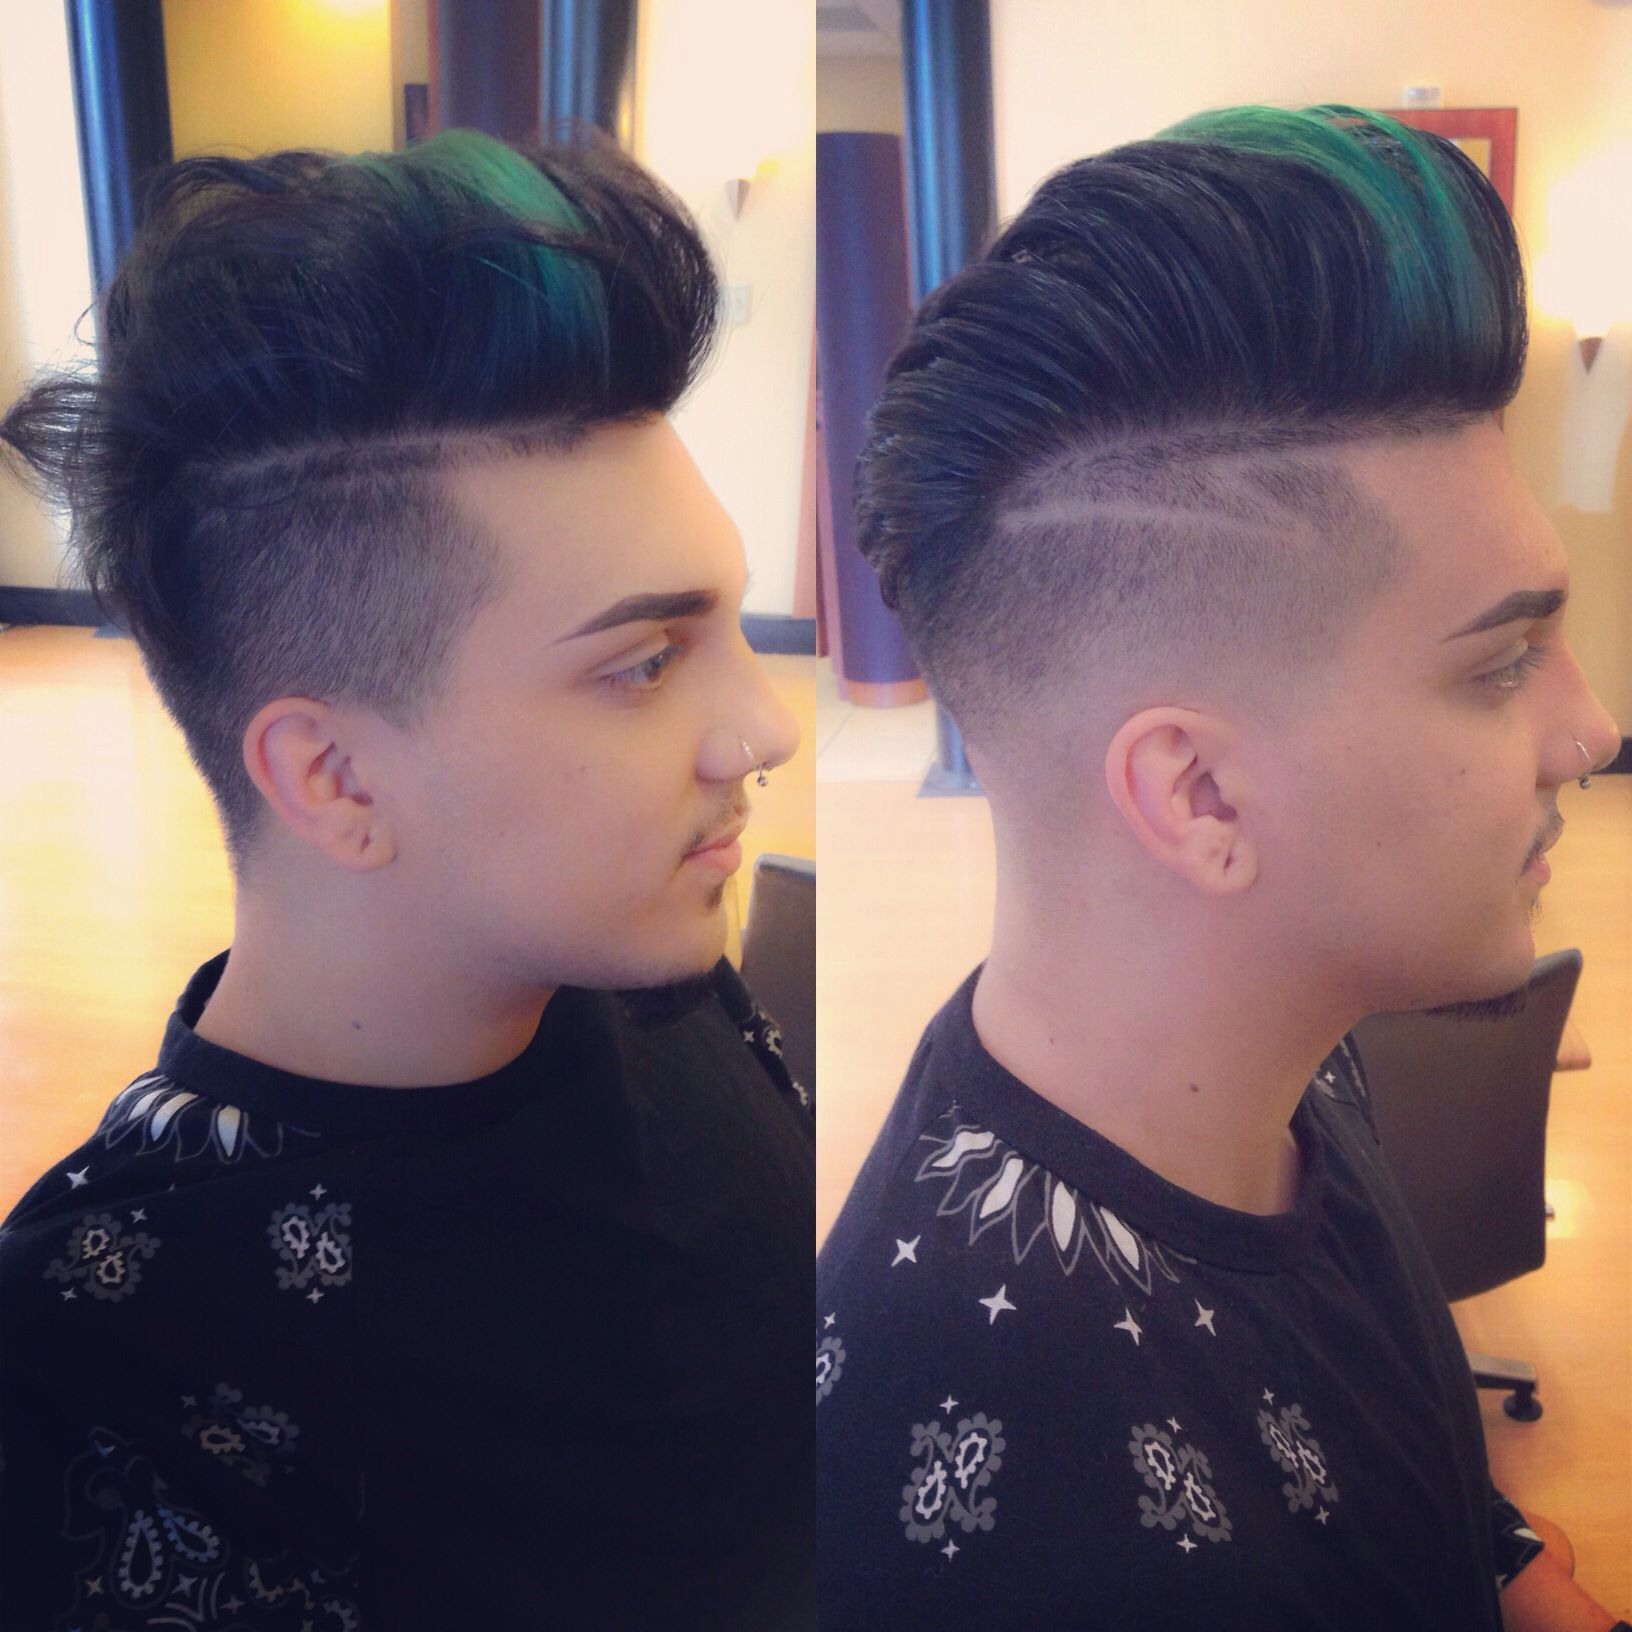 Before and after menus fade with a pompadour haircut pinterest